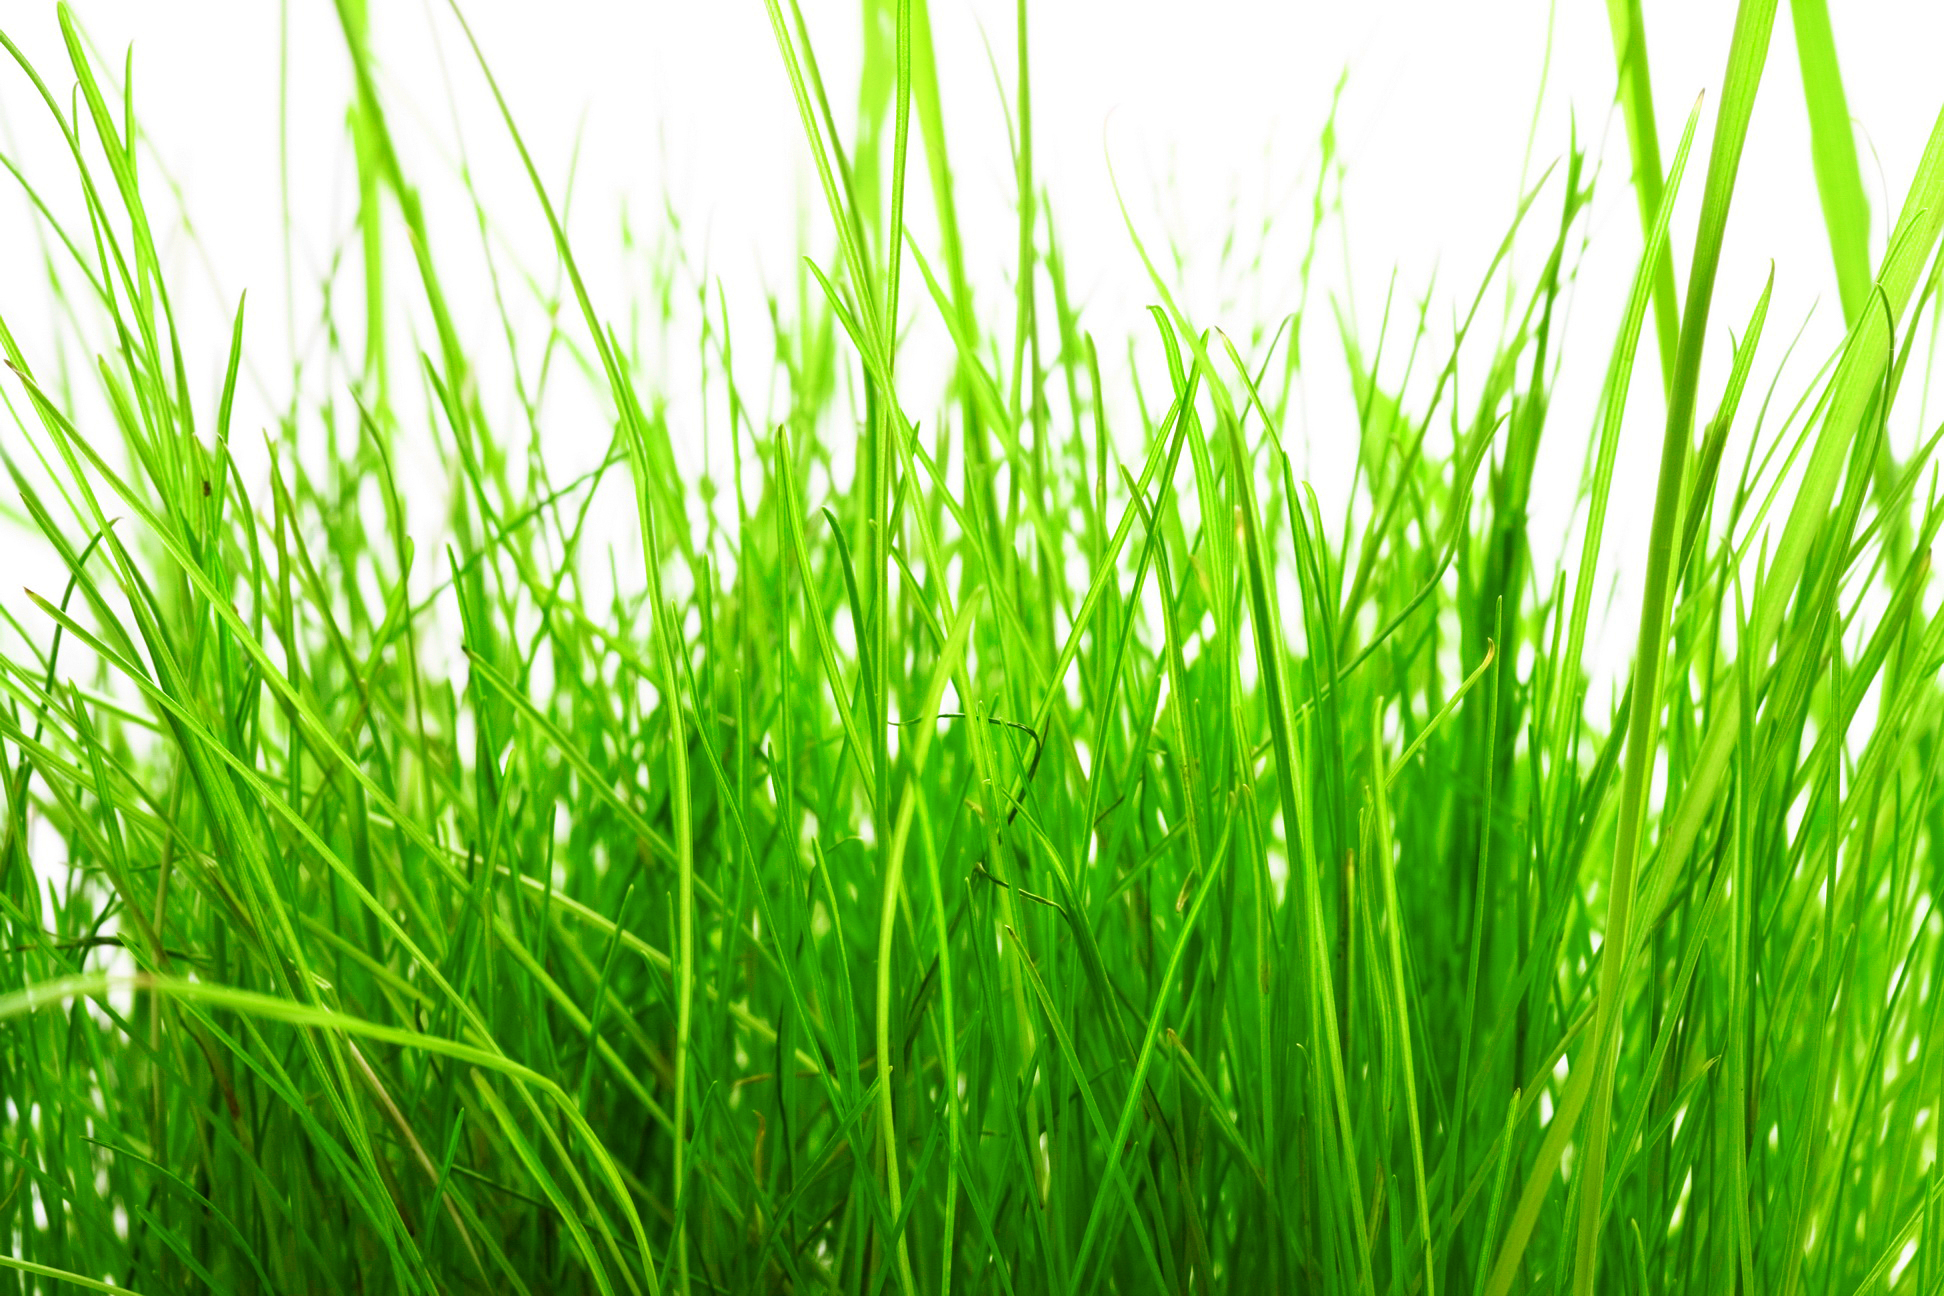 Grass, Pasture, Plain, Outdoor, Nobody, HQ Photo